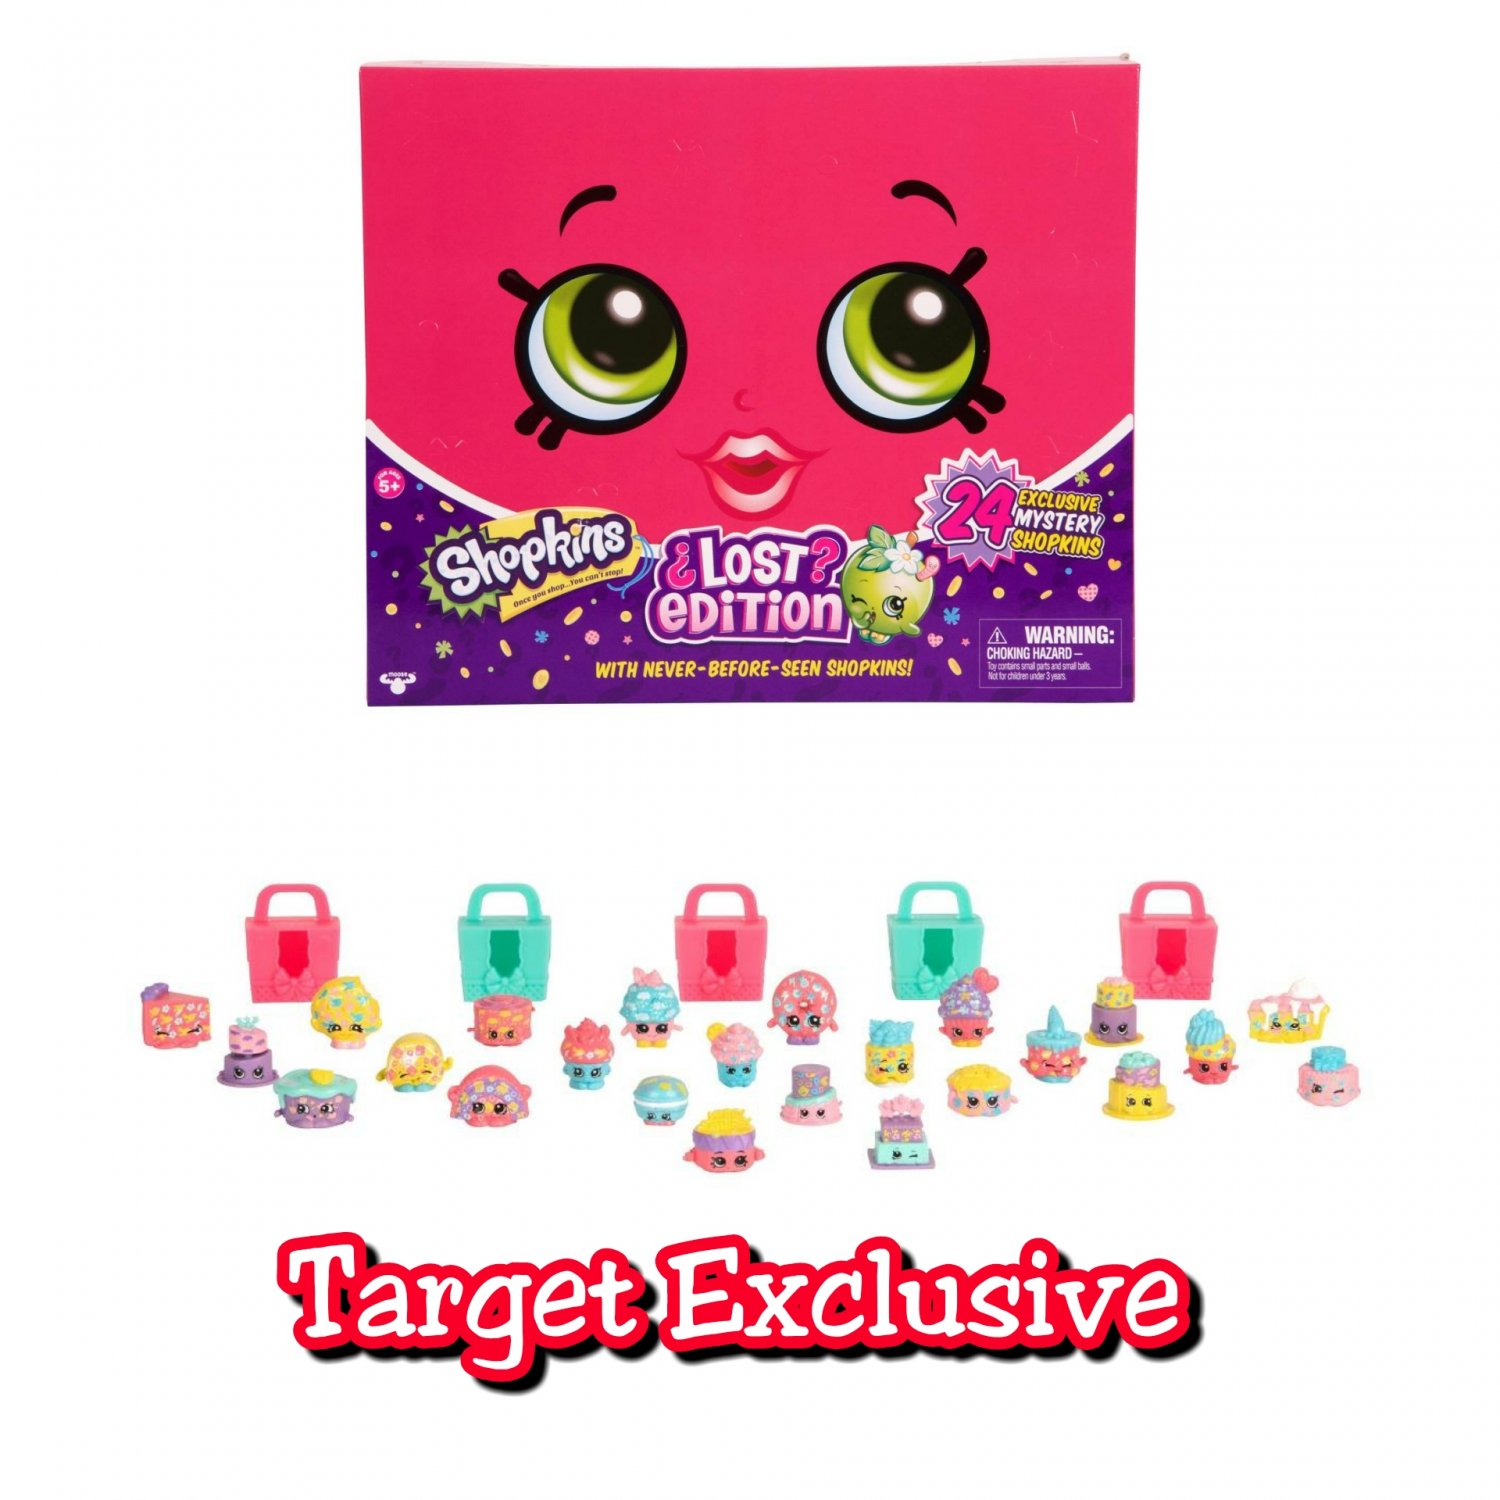 Shopkins Lost Edition by Moose Toys - Target Exclusive - #56551